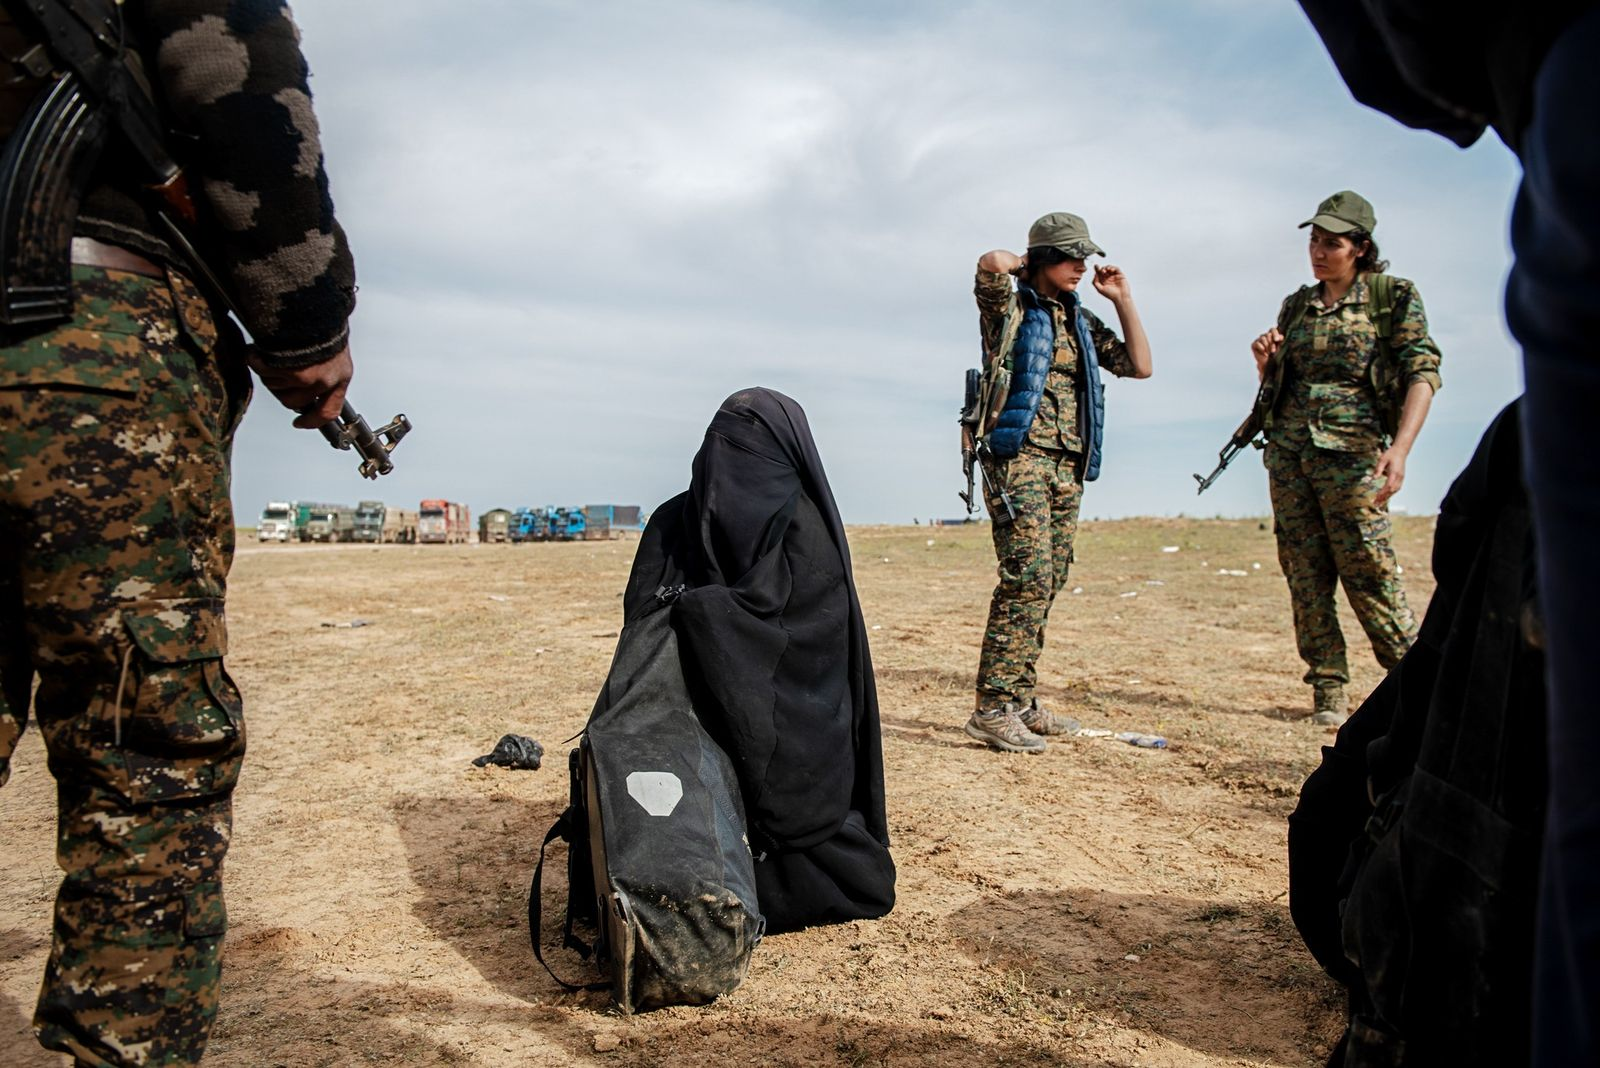 Kurdish fighters surround a surrendering woman as ISIS abandons the town of Baghouz, Syria in March. ...